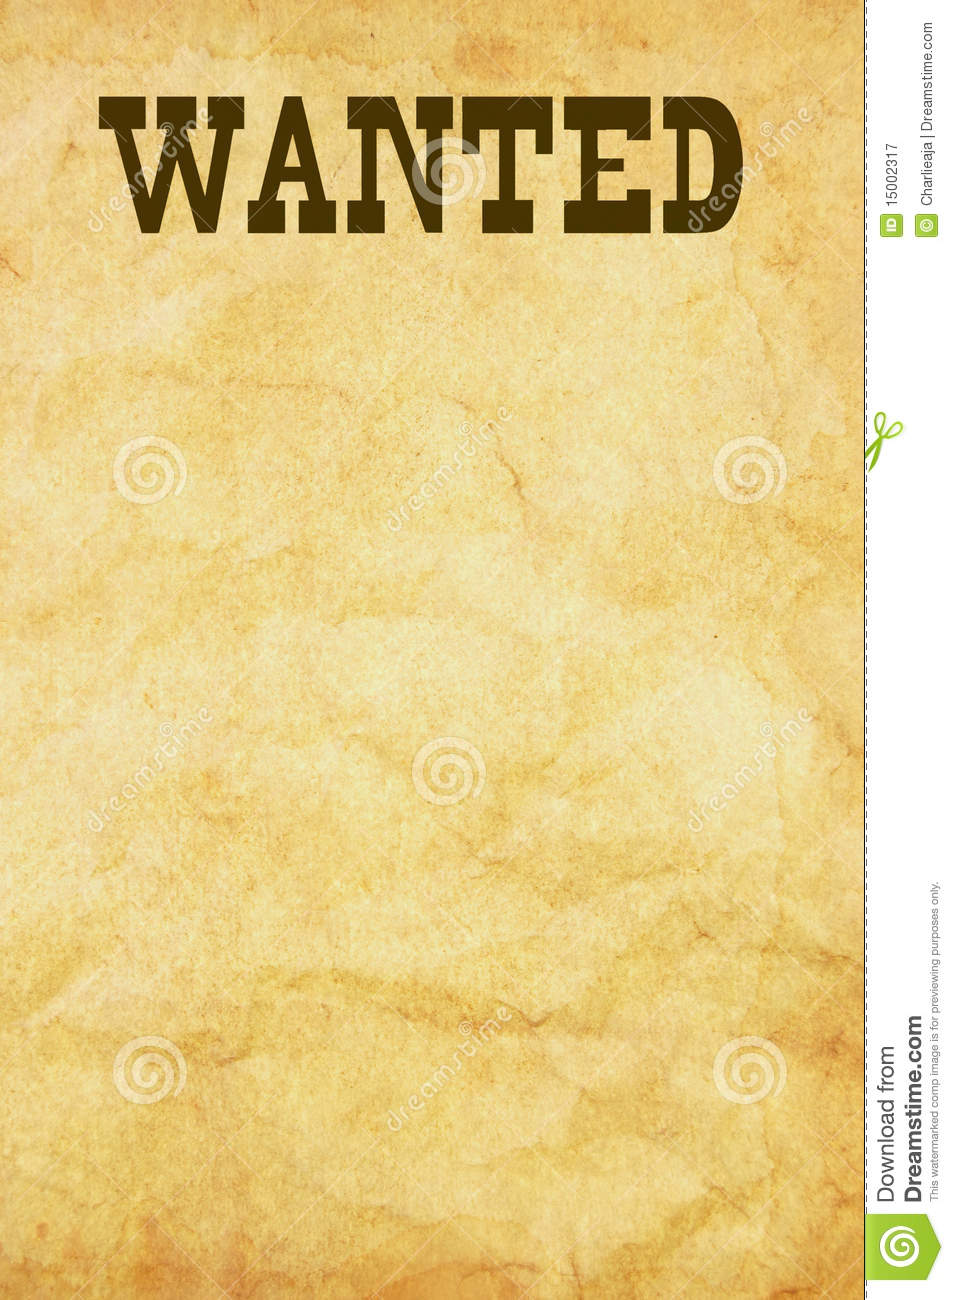 blank wanted poster - Roho.4senses.co